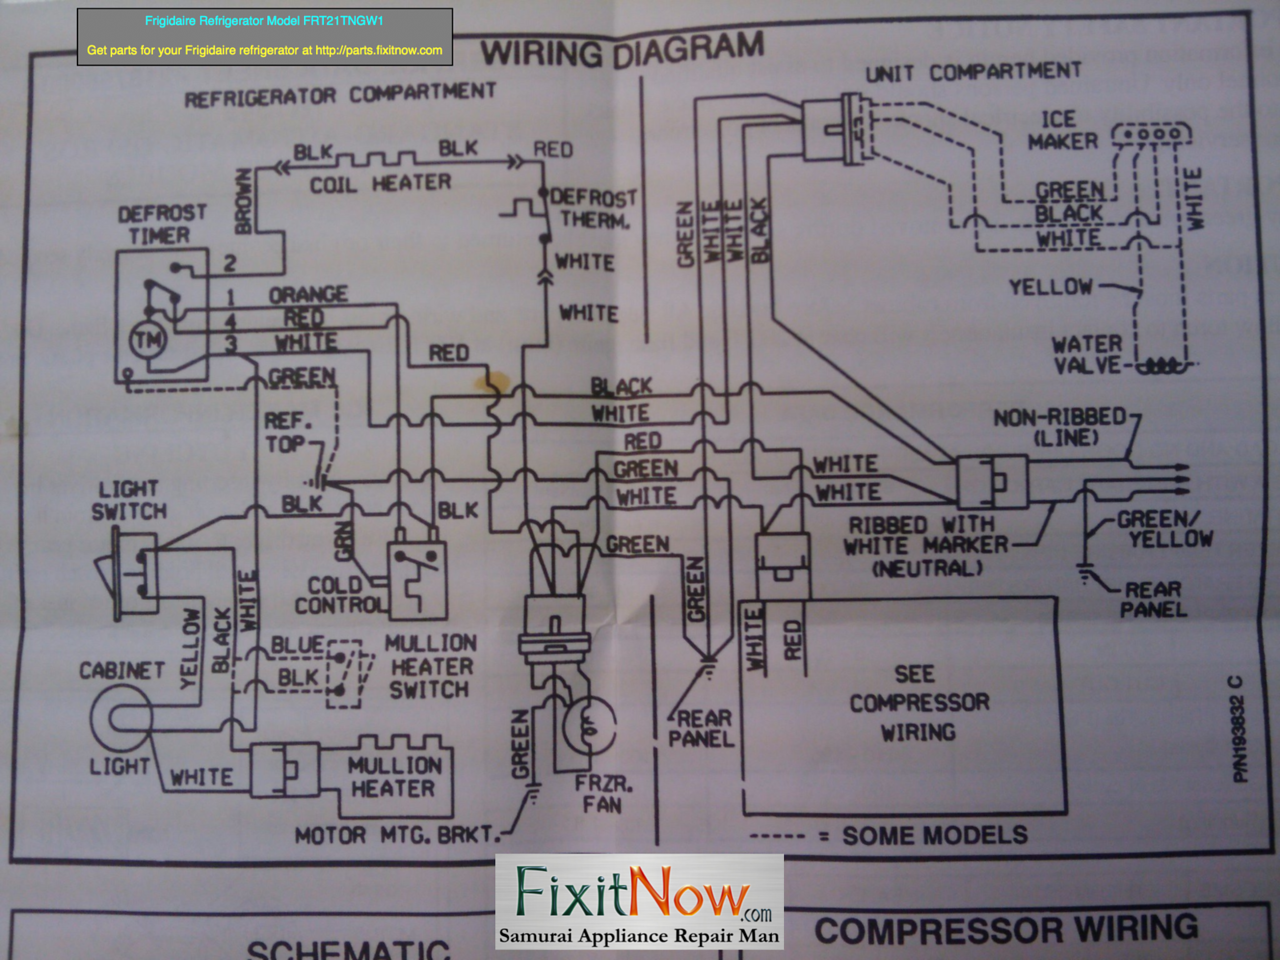 Wiring diagrams and schematics appliantology frigidaire refrigerator model frt21tngw1 wiring diagram asfbconference2016 Choice Image